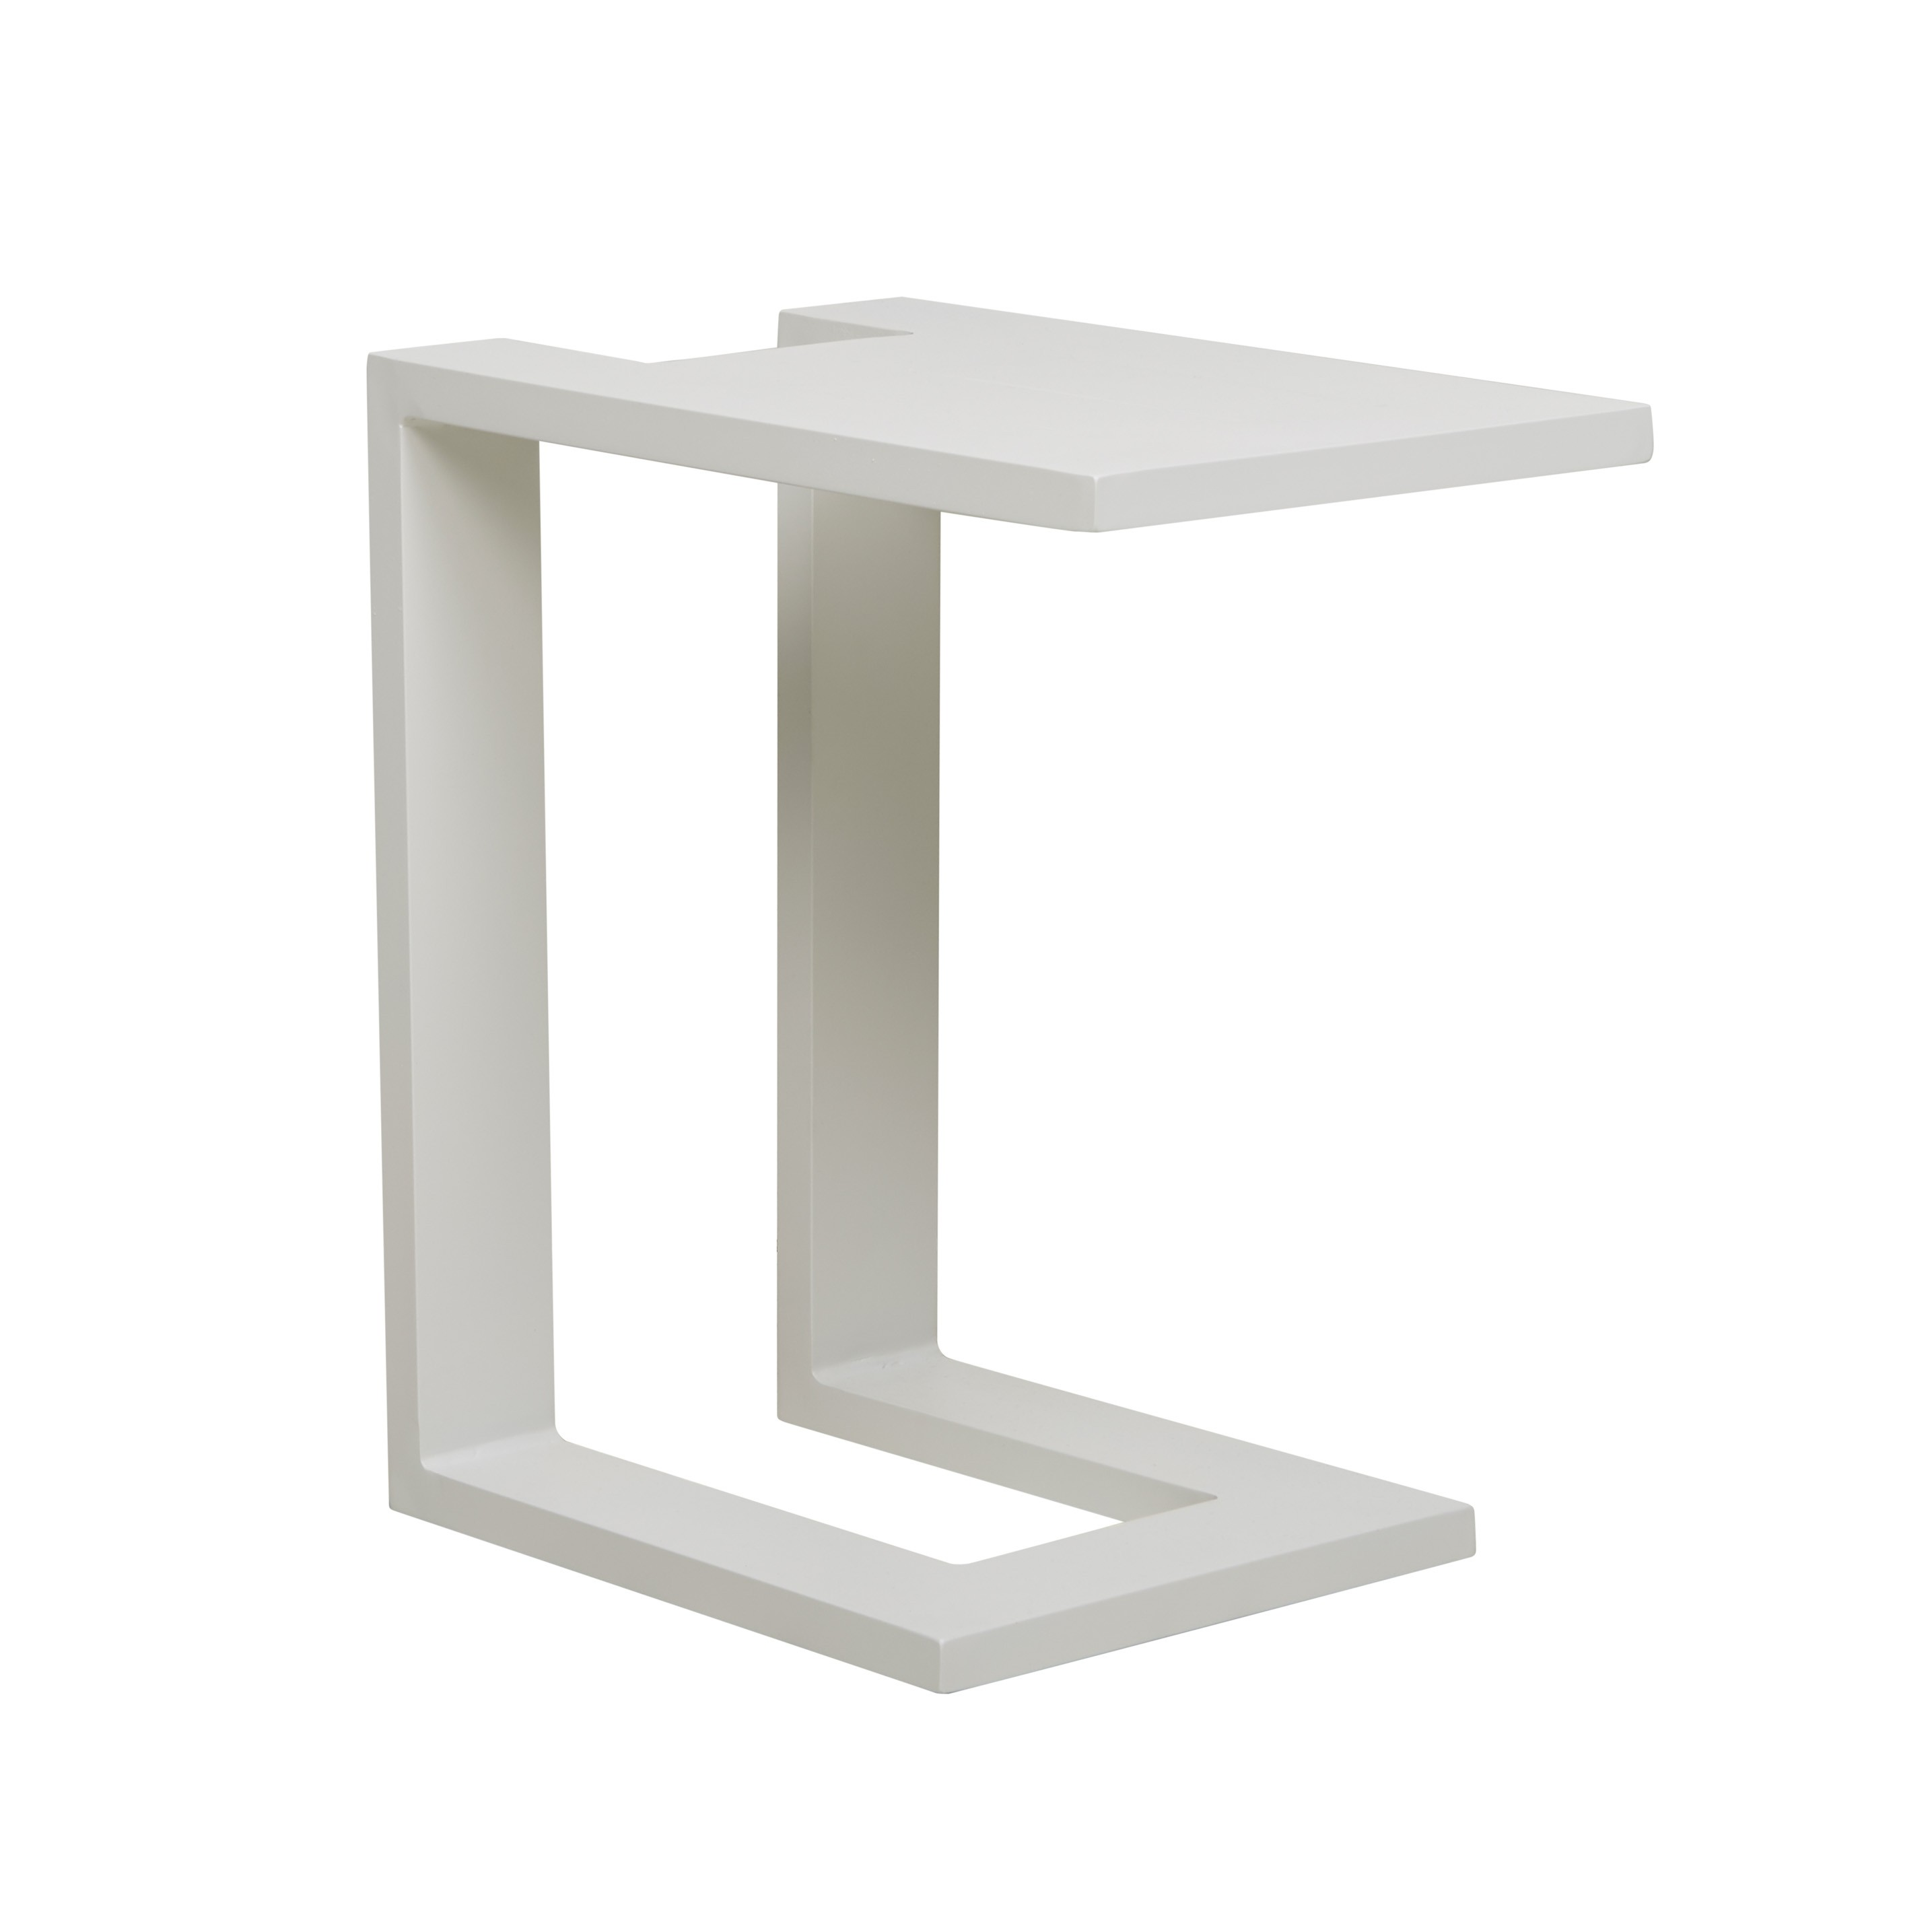 Furniture Hero-Images Coffee-Side-Tables-and-Trolleys aruba-side-table-01